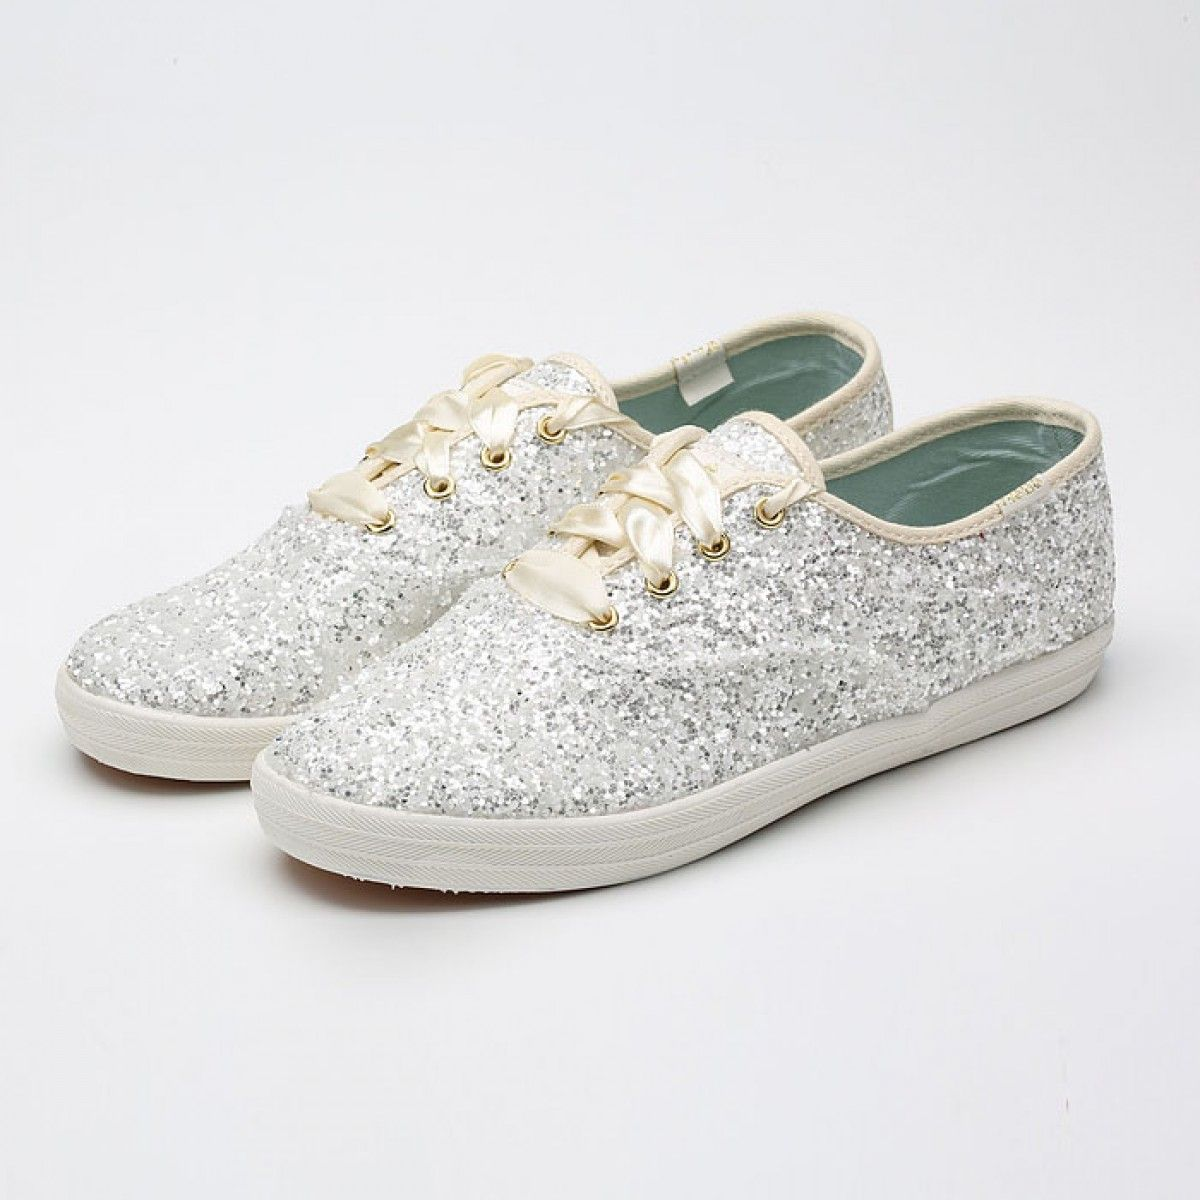 Womens Keds Shoes Silver X Kate Spade New York Champion Glitters Classic  Canvas